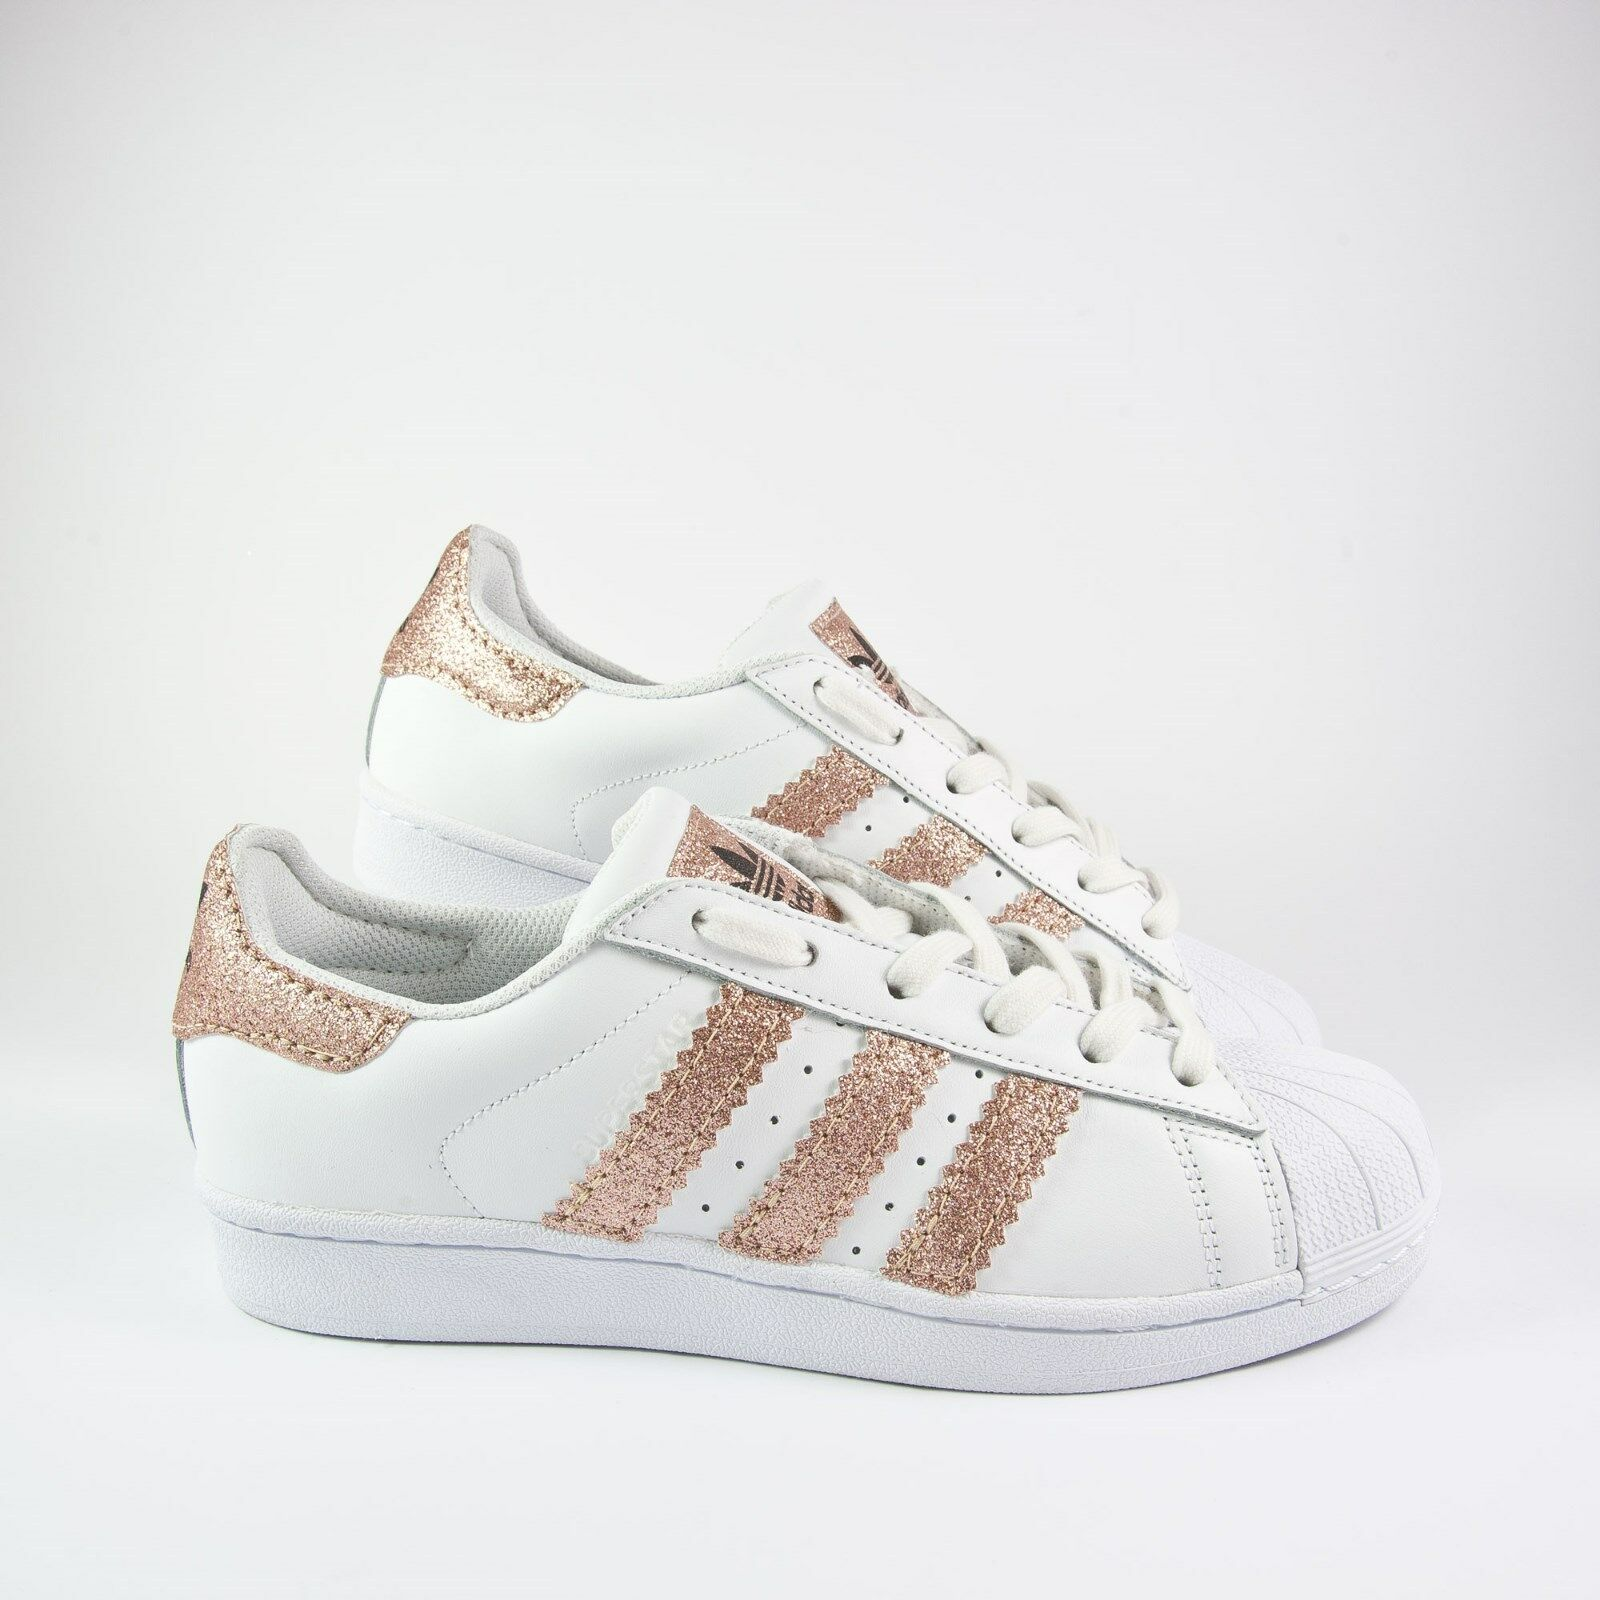 shoes Adidas Superstar with Glitter Pink